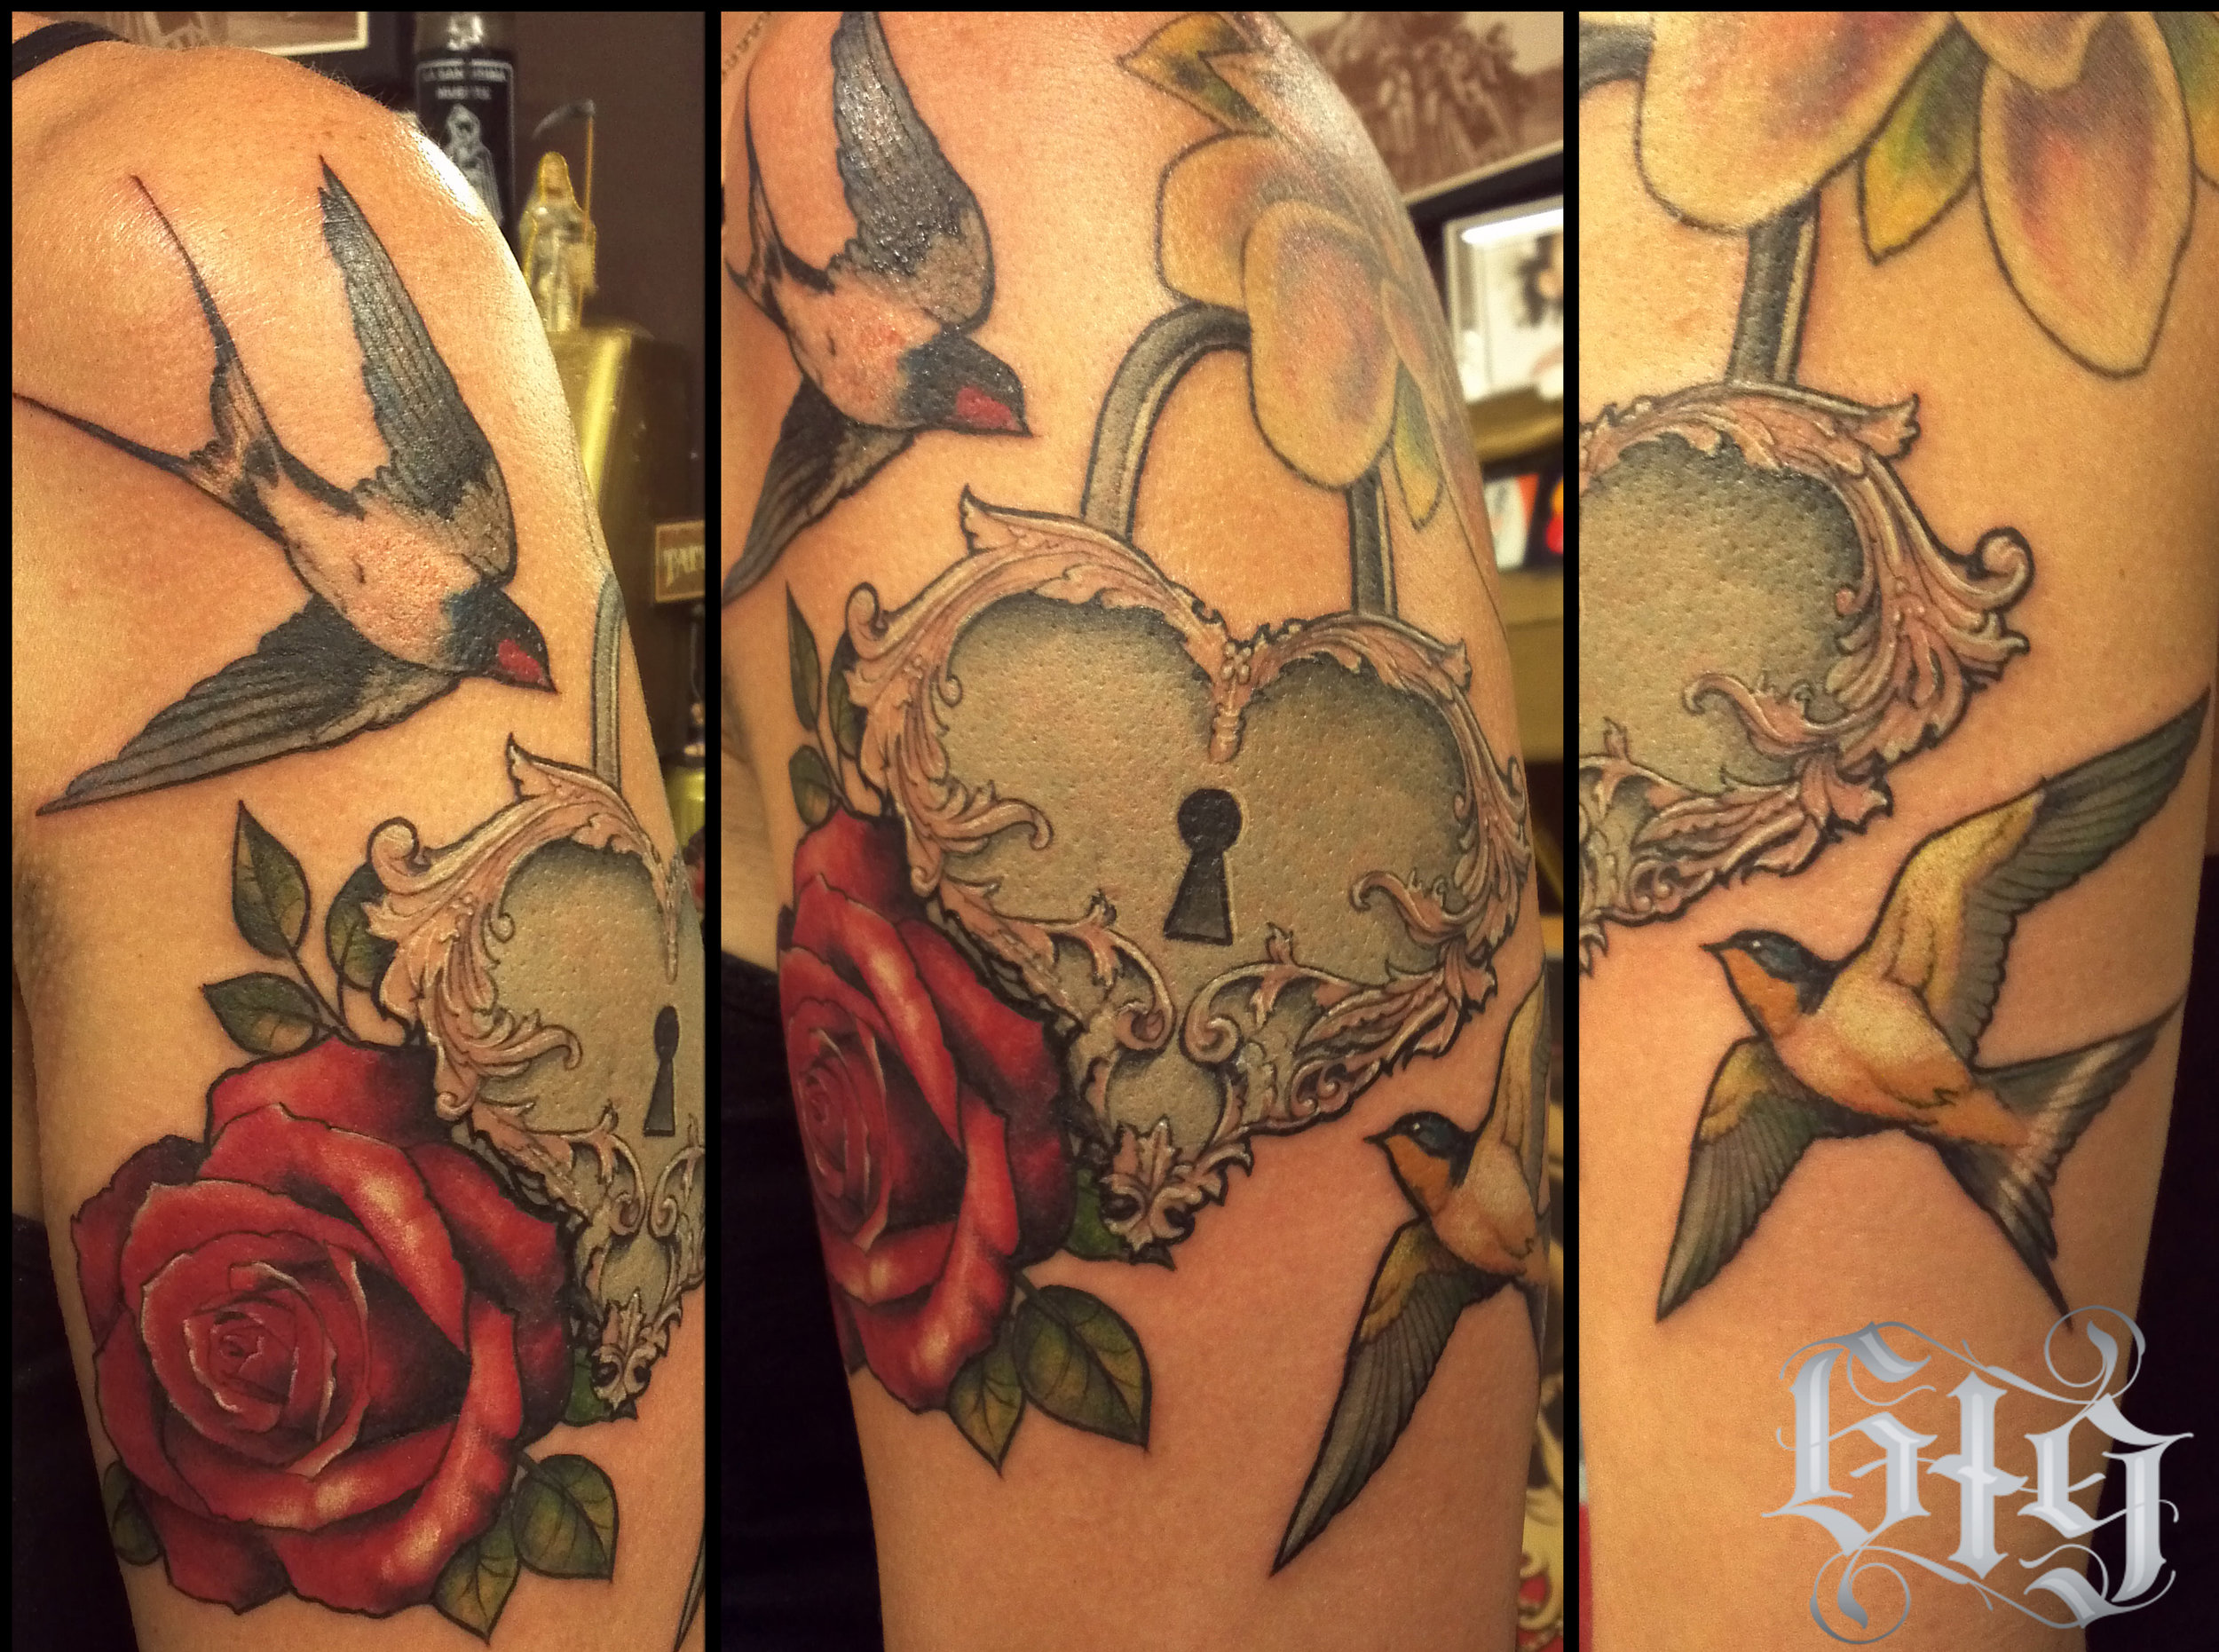 Heart Locket with rose and swallows in color. Upper arm half sleeve tattoo continuation.